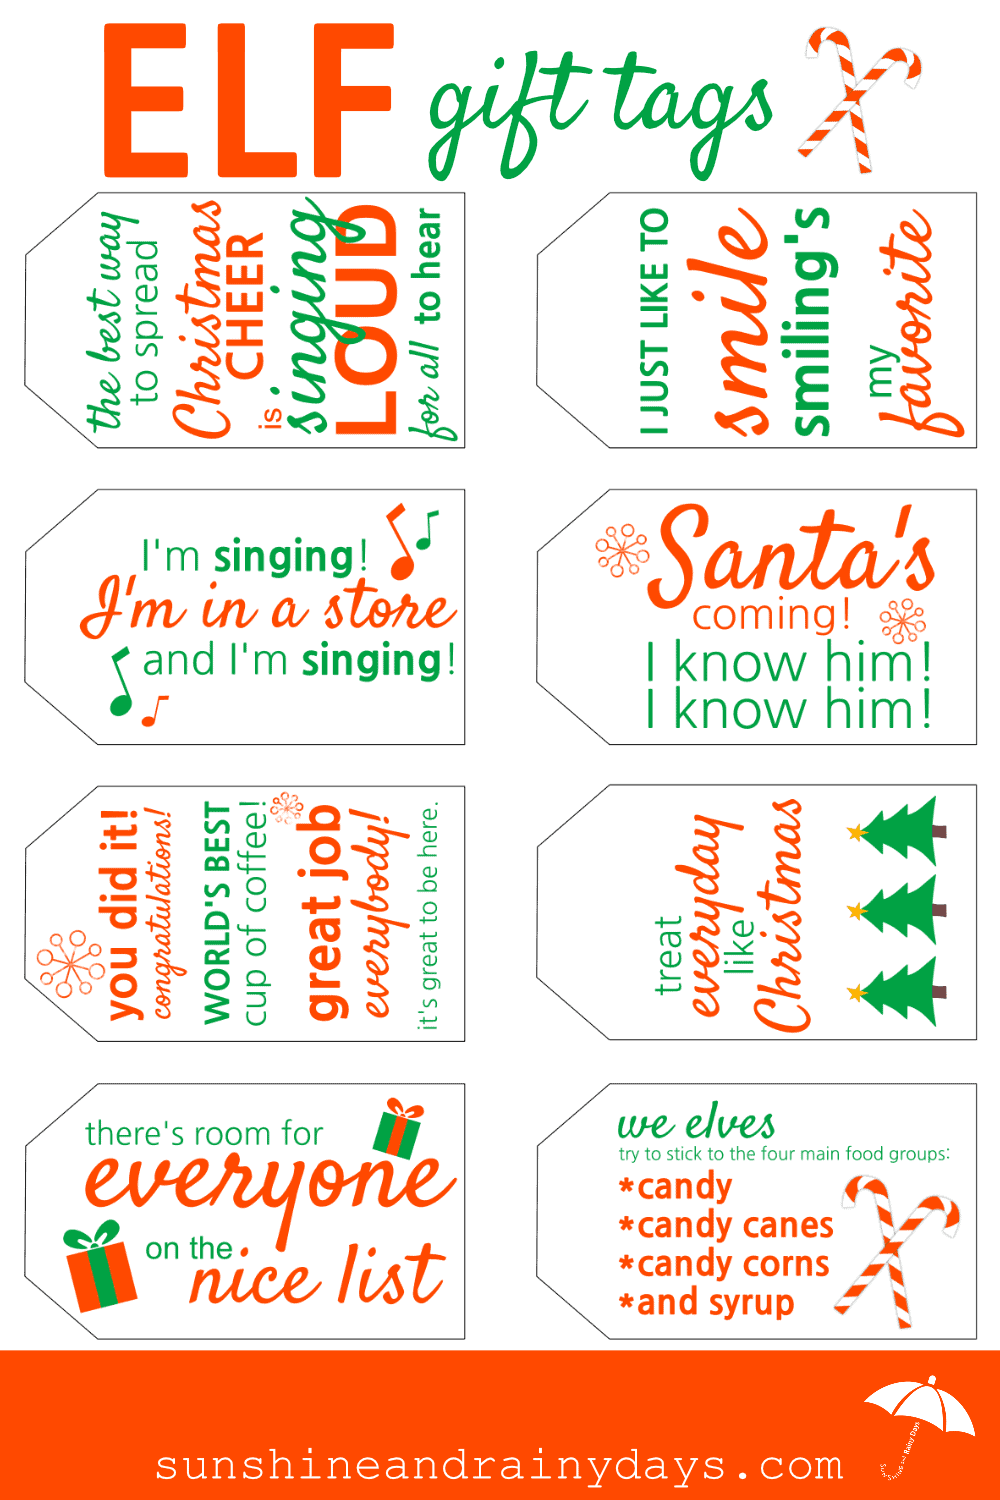 photo relating to Printable Santa Gift Tags identified as ELF Present Tags Cost-free Printable -